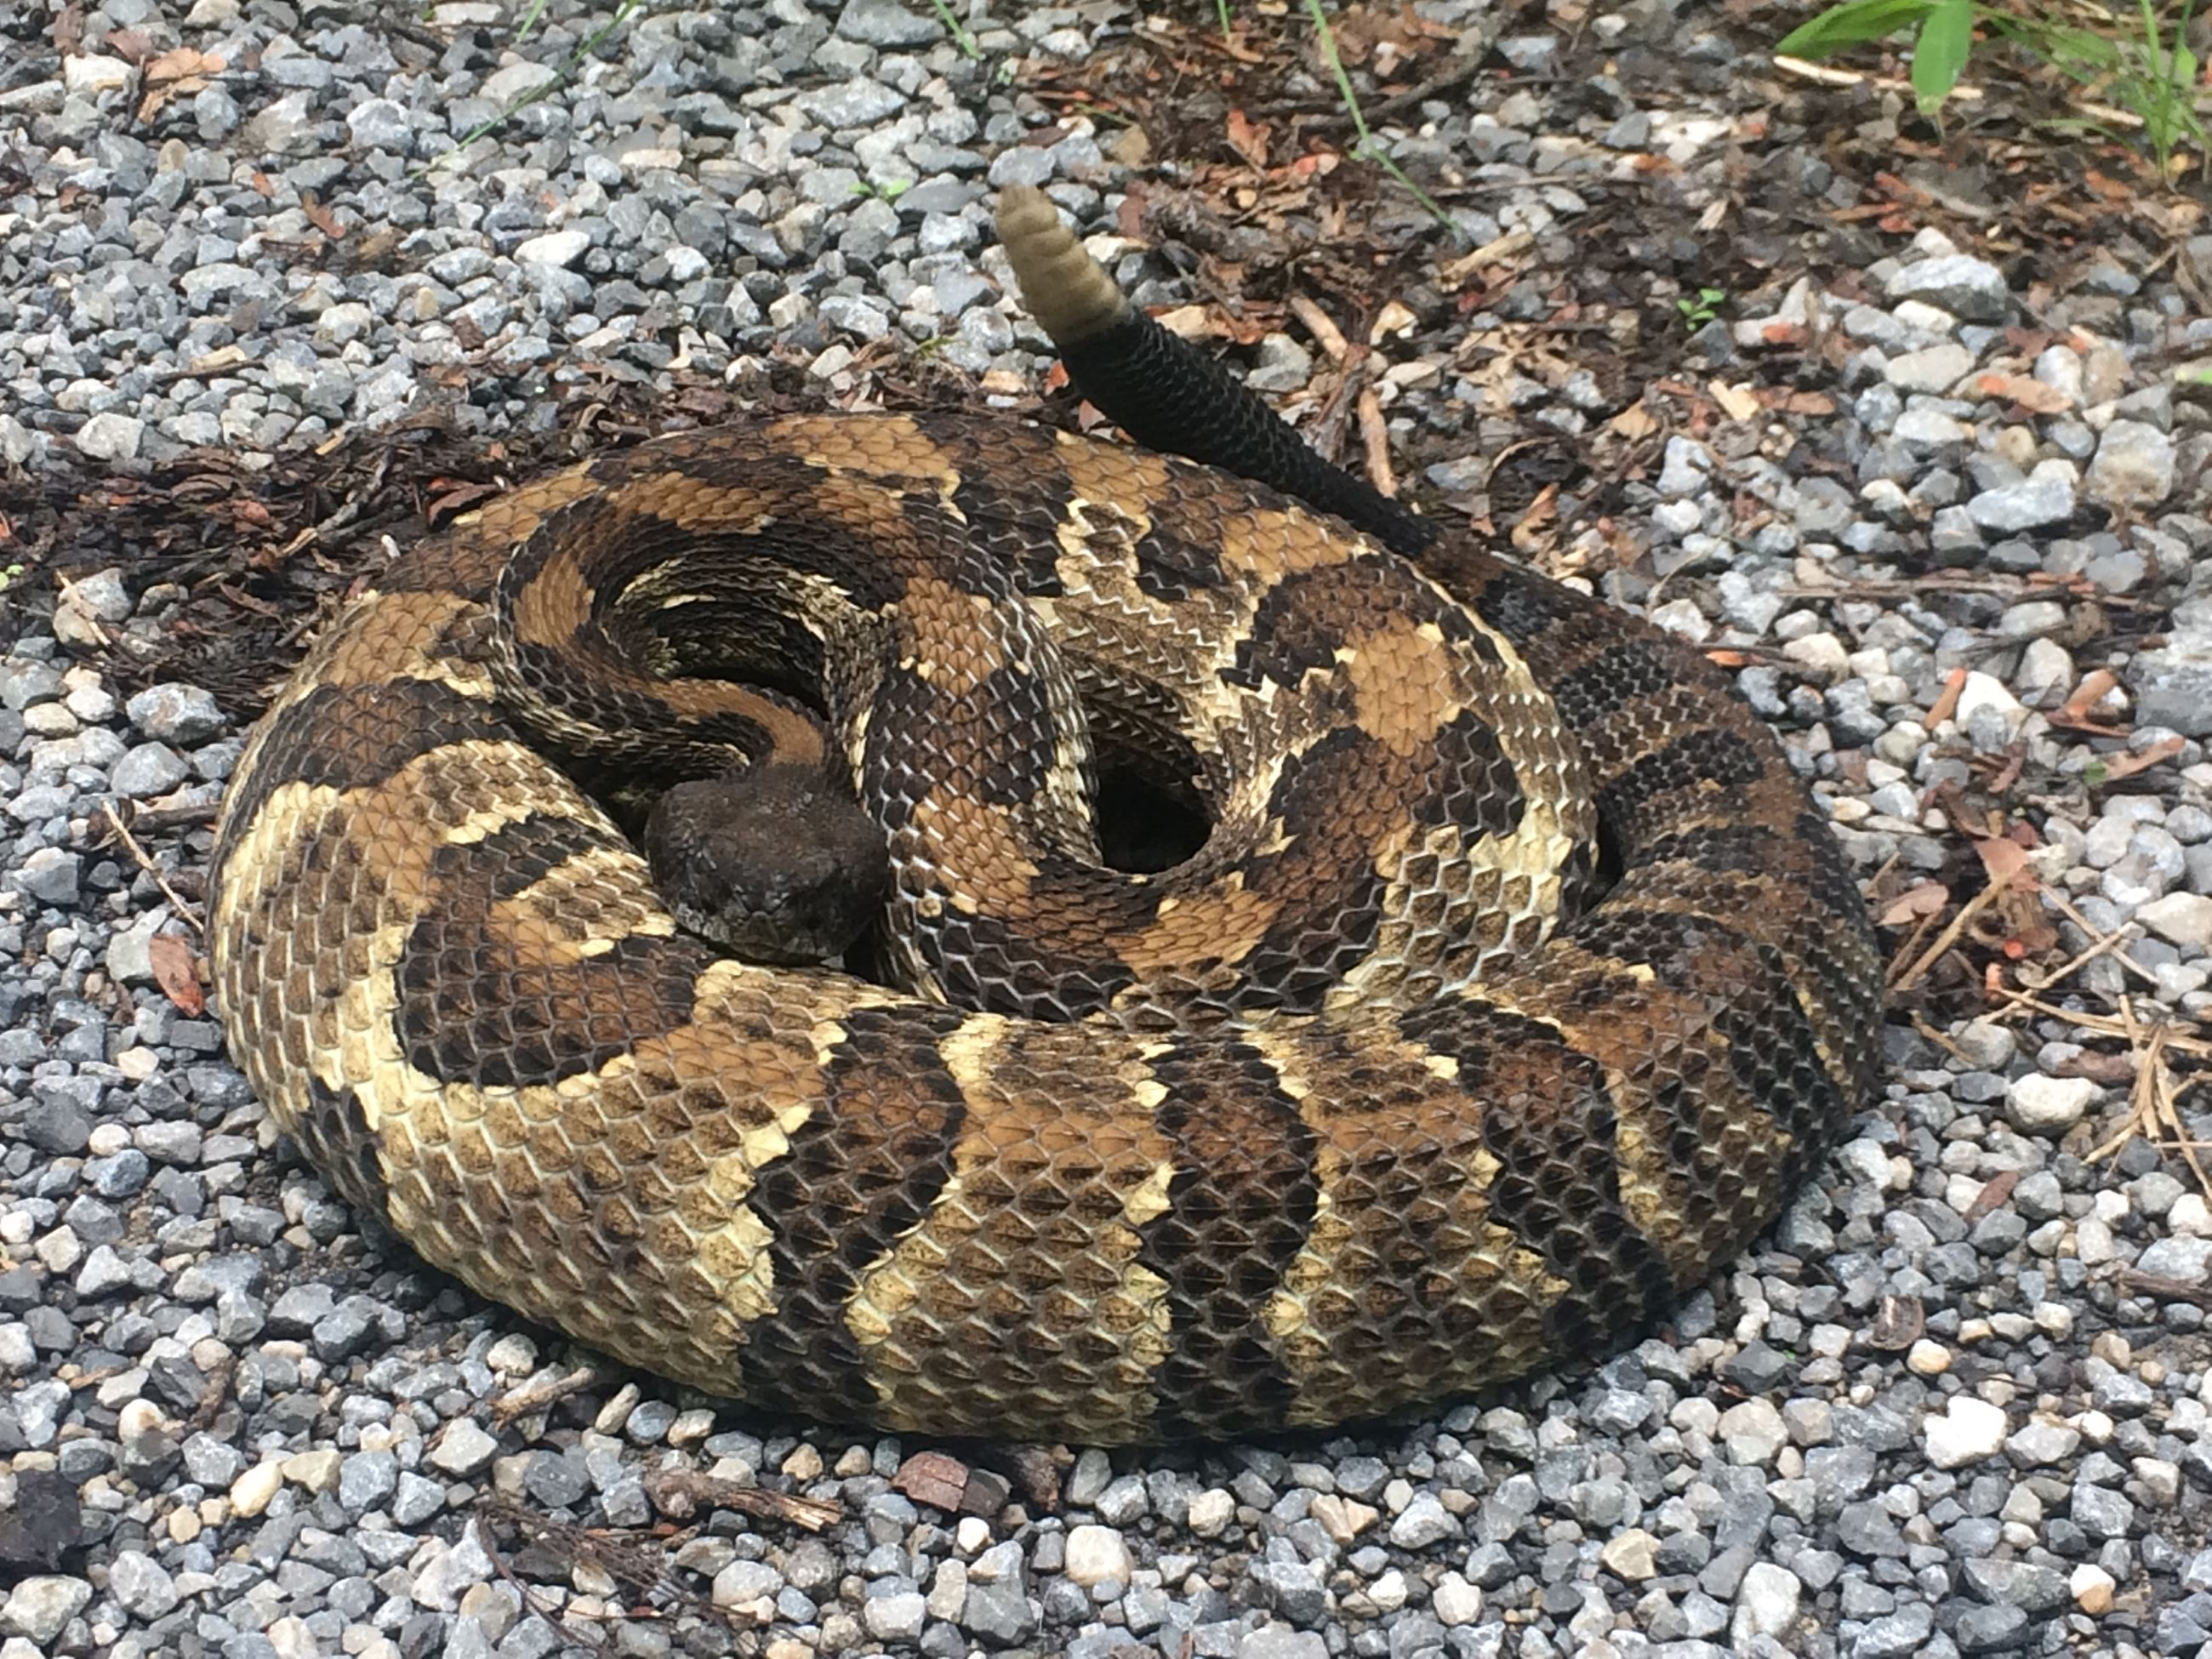 Photo fo a Timber Rattlesnake